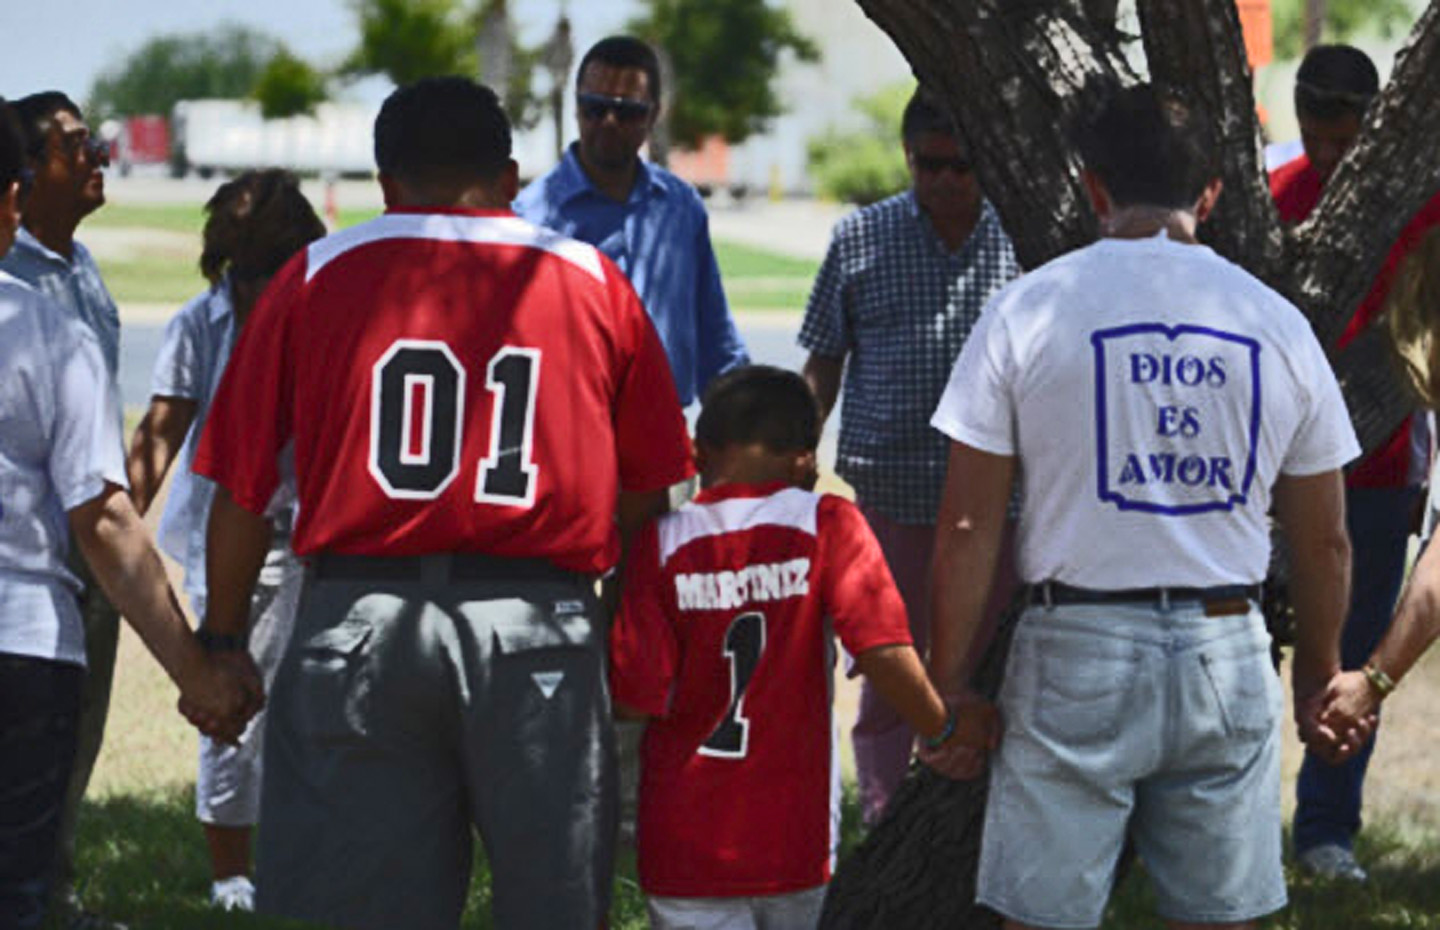 Texas Baptists pray in McAllen outside immigrant processing center. Photo: Leah Allen/Texas Baptist Communications